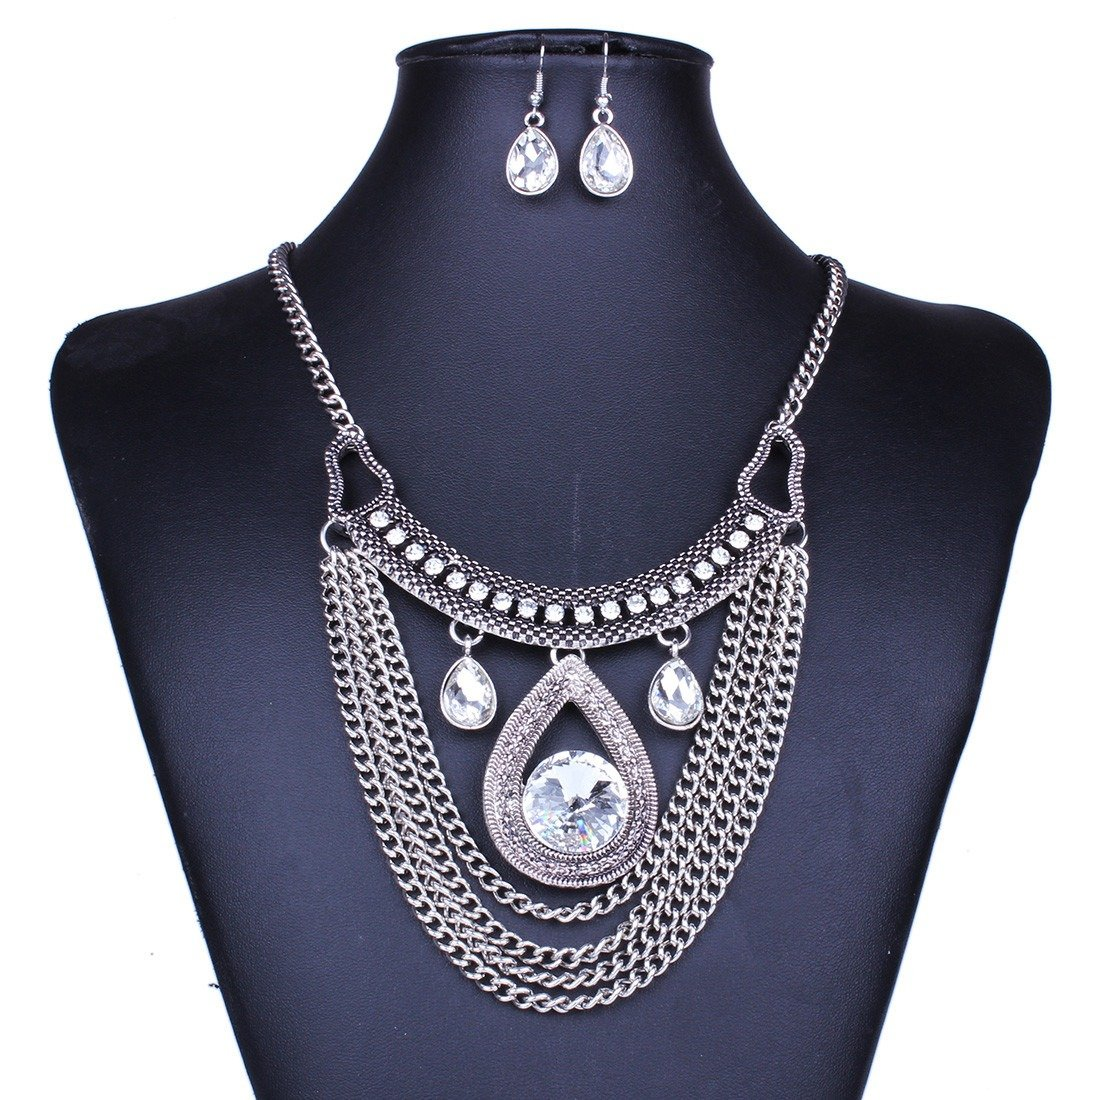 Qiyun Tribal Tibet Silver Long Tassel Faceted Rhinestone Drop Necklace Earring Long Gland Argent Goutte Facettes Collier W005N2251